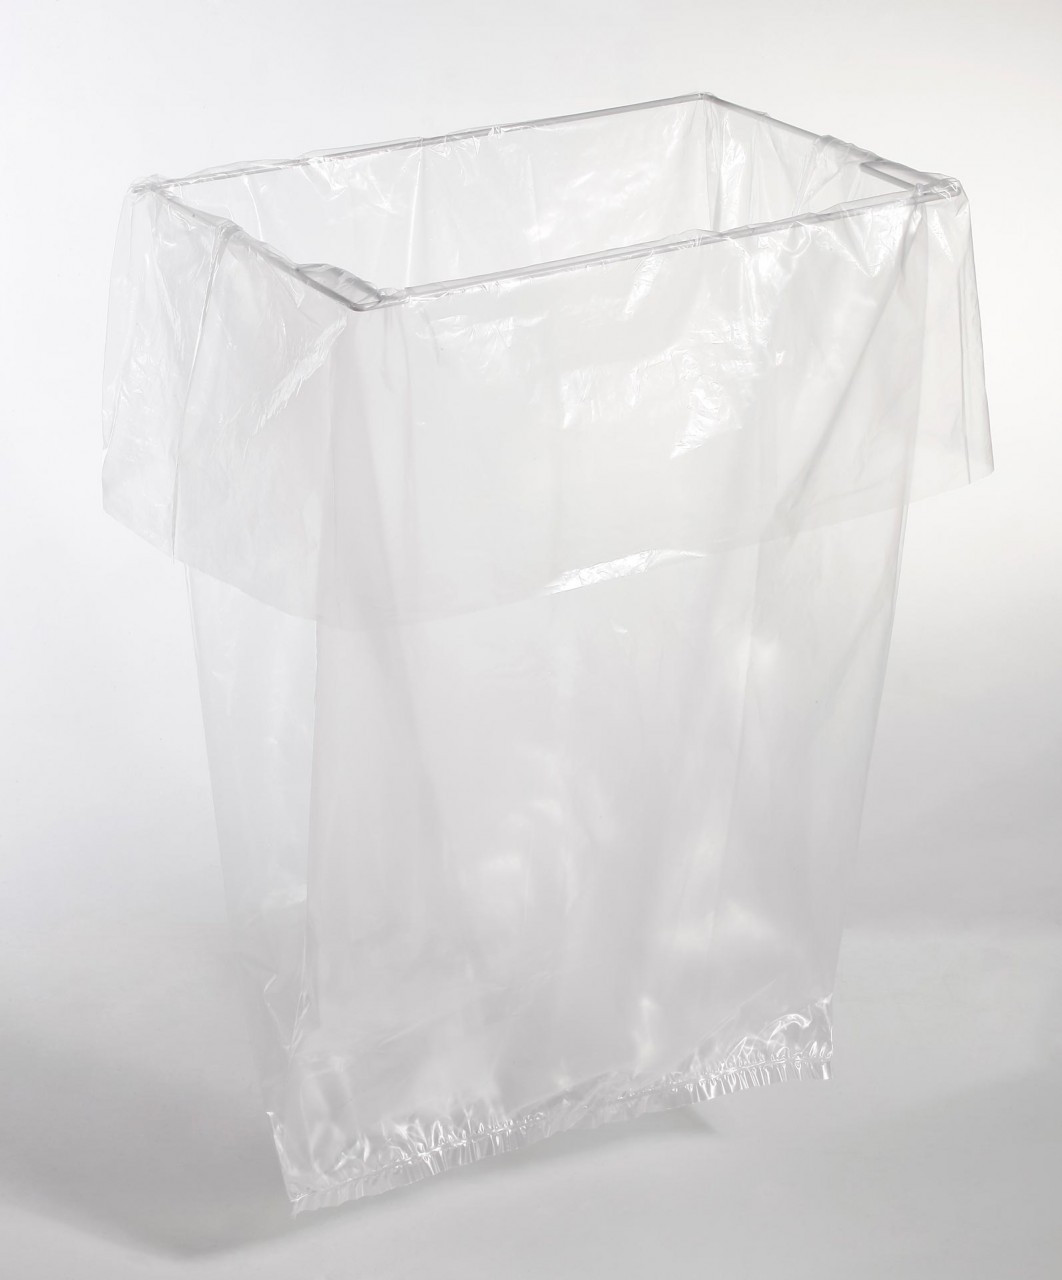 Dahle 20707 60-100 Litre Waste Bags Suits Models 403/404/413/414 (Pack of 10)